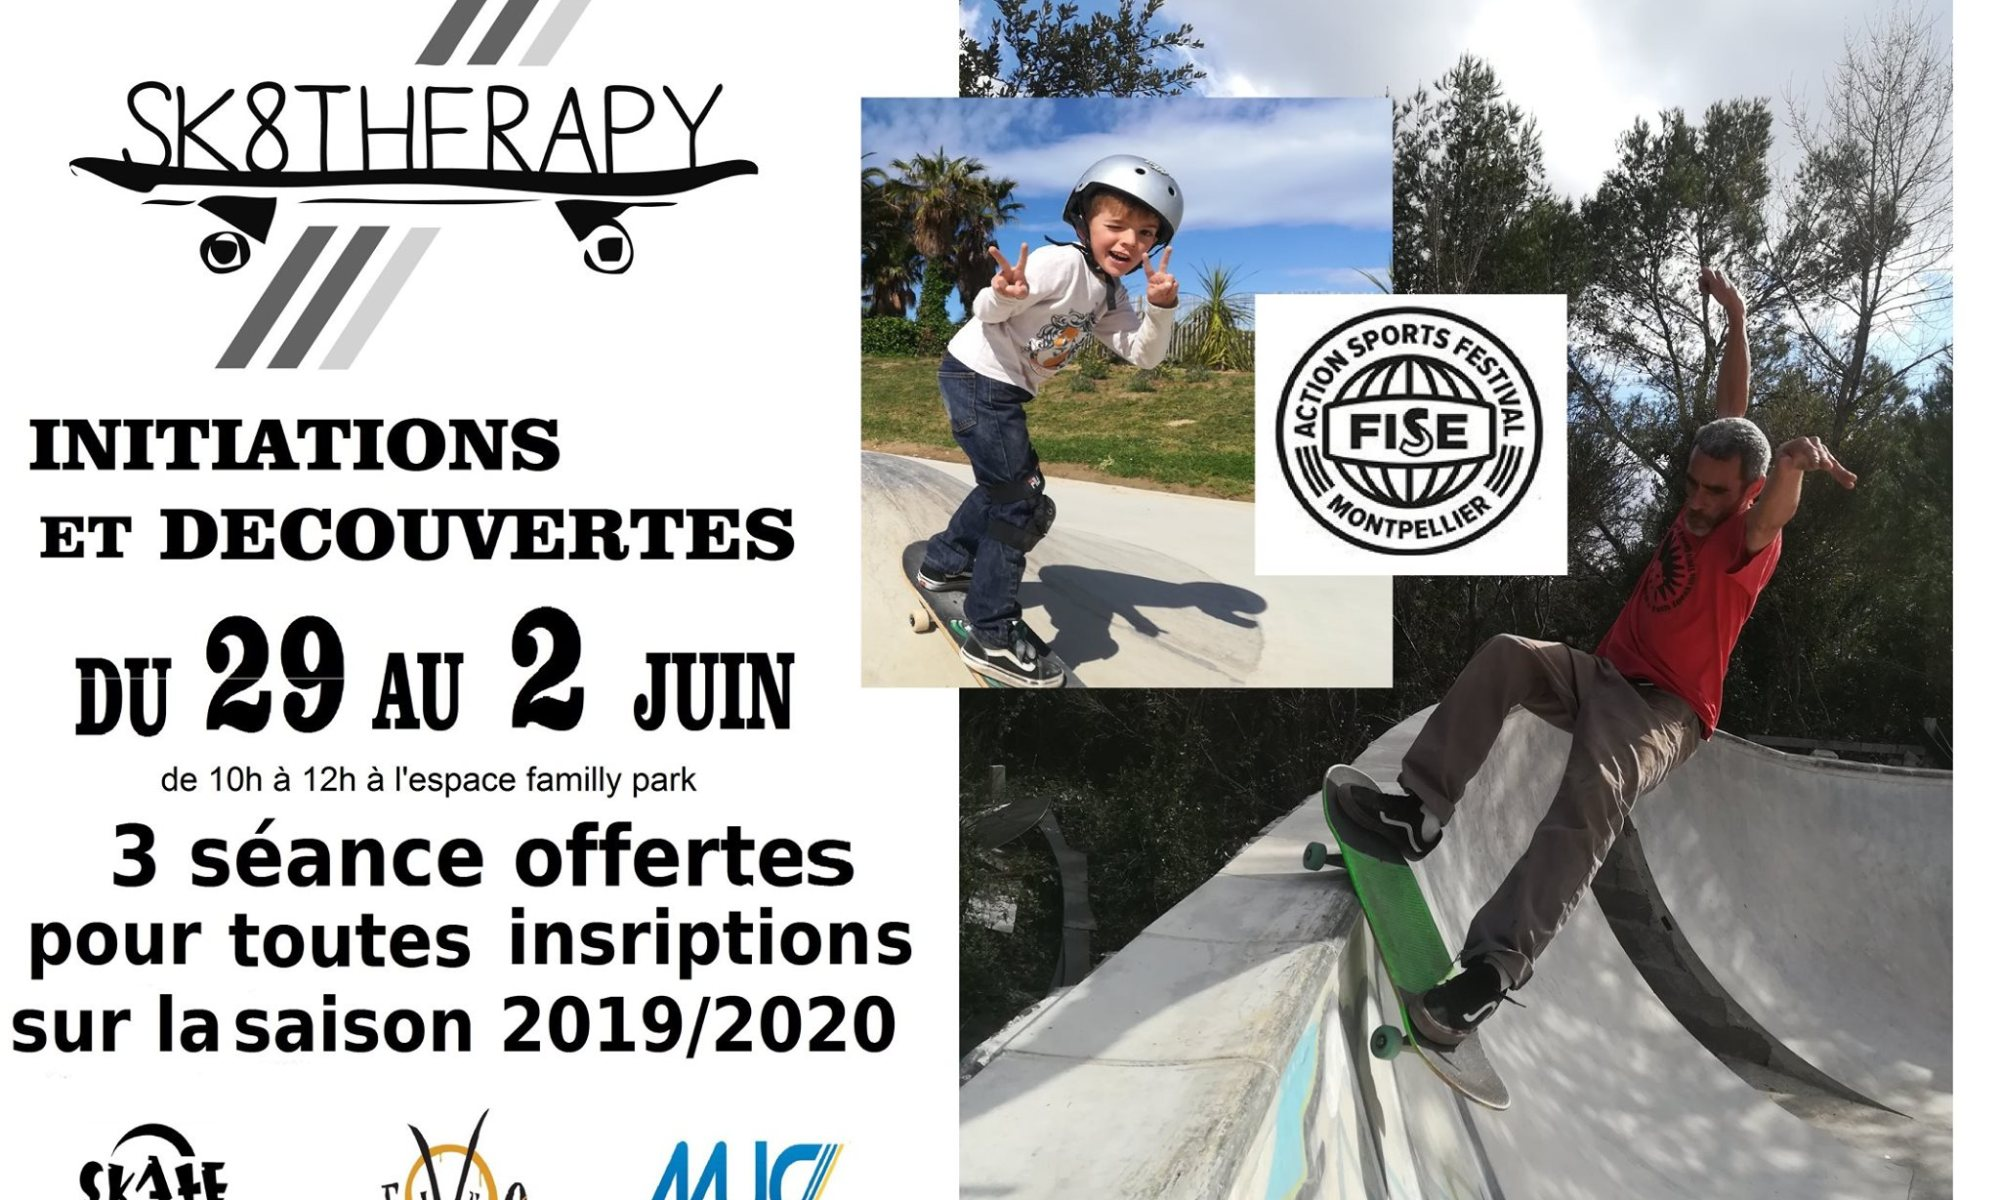 fise2019sk8therapy